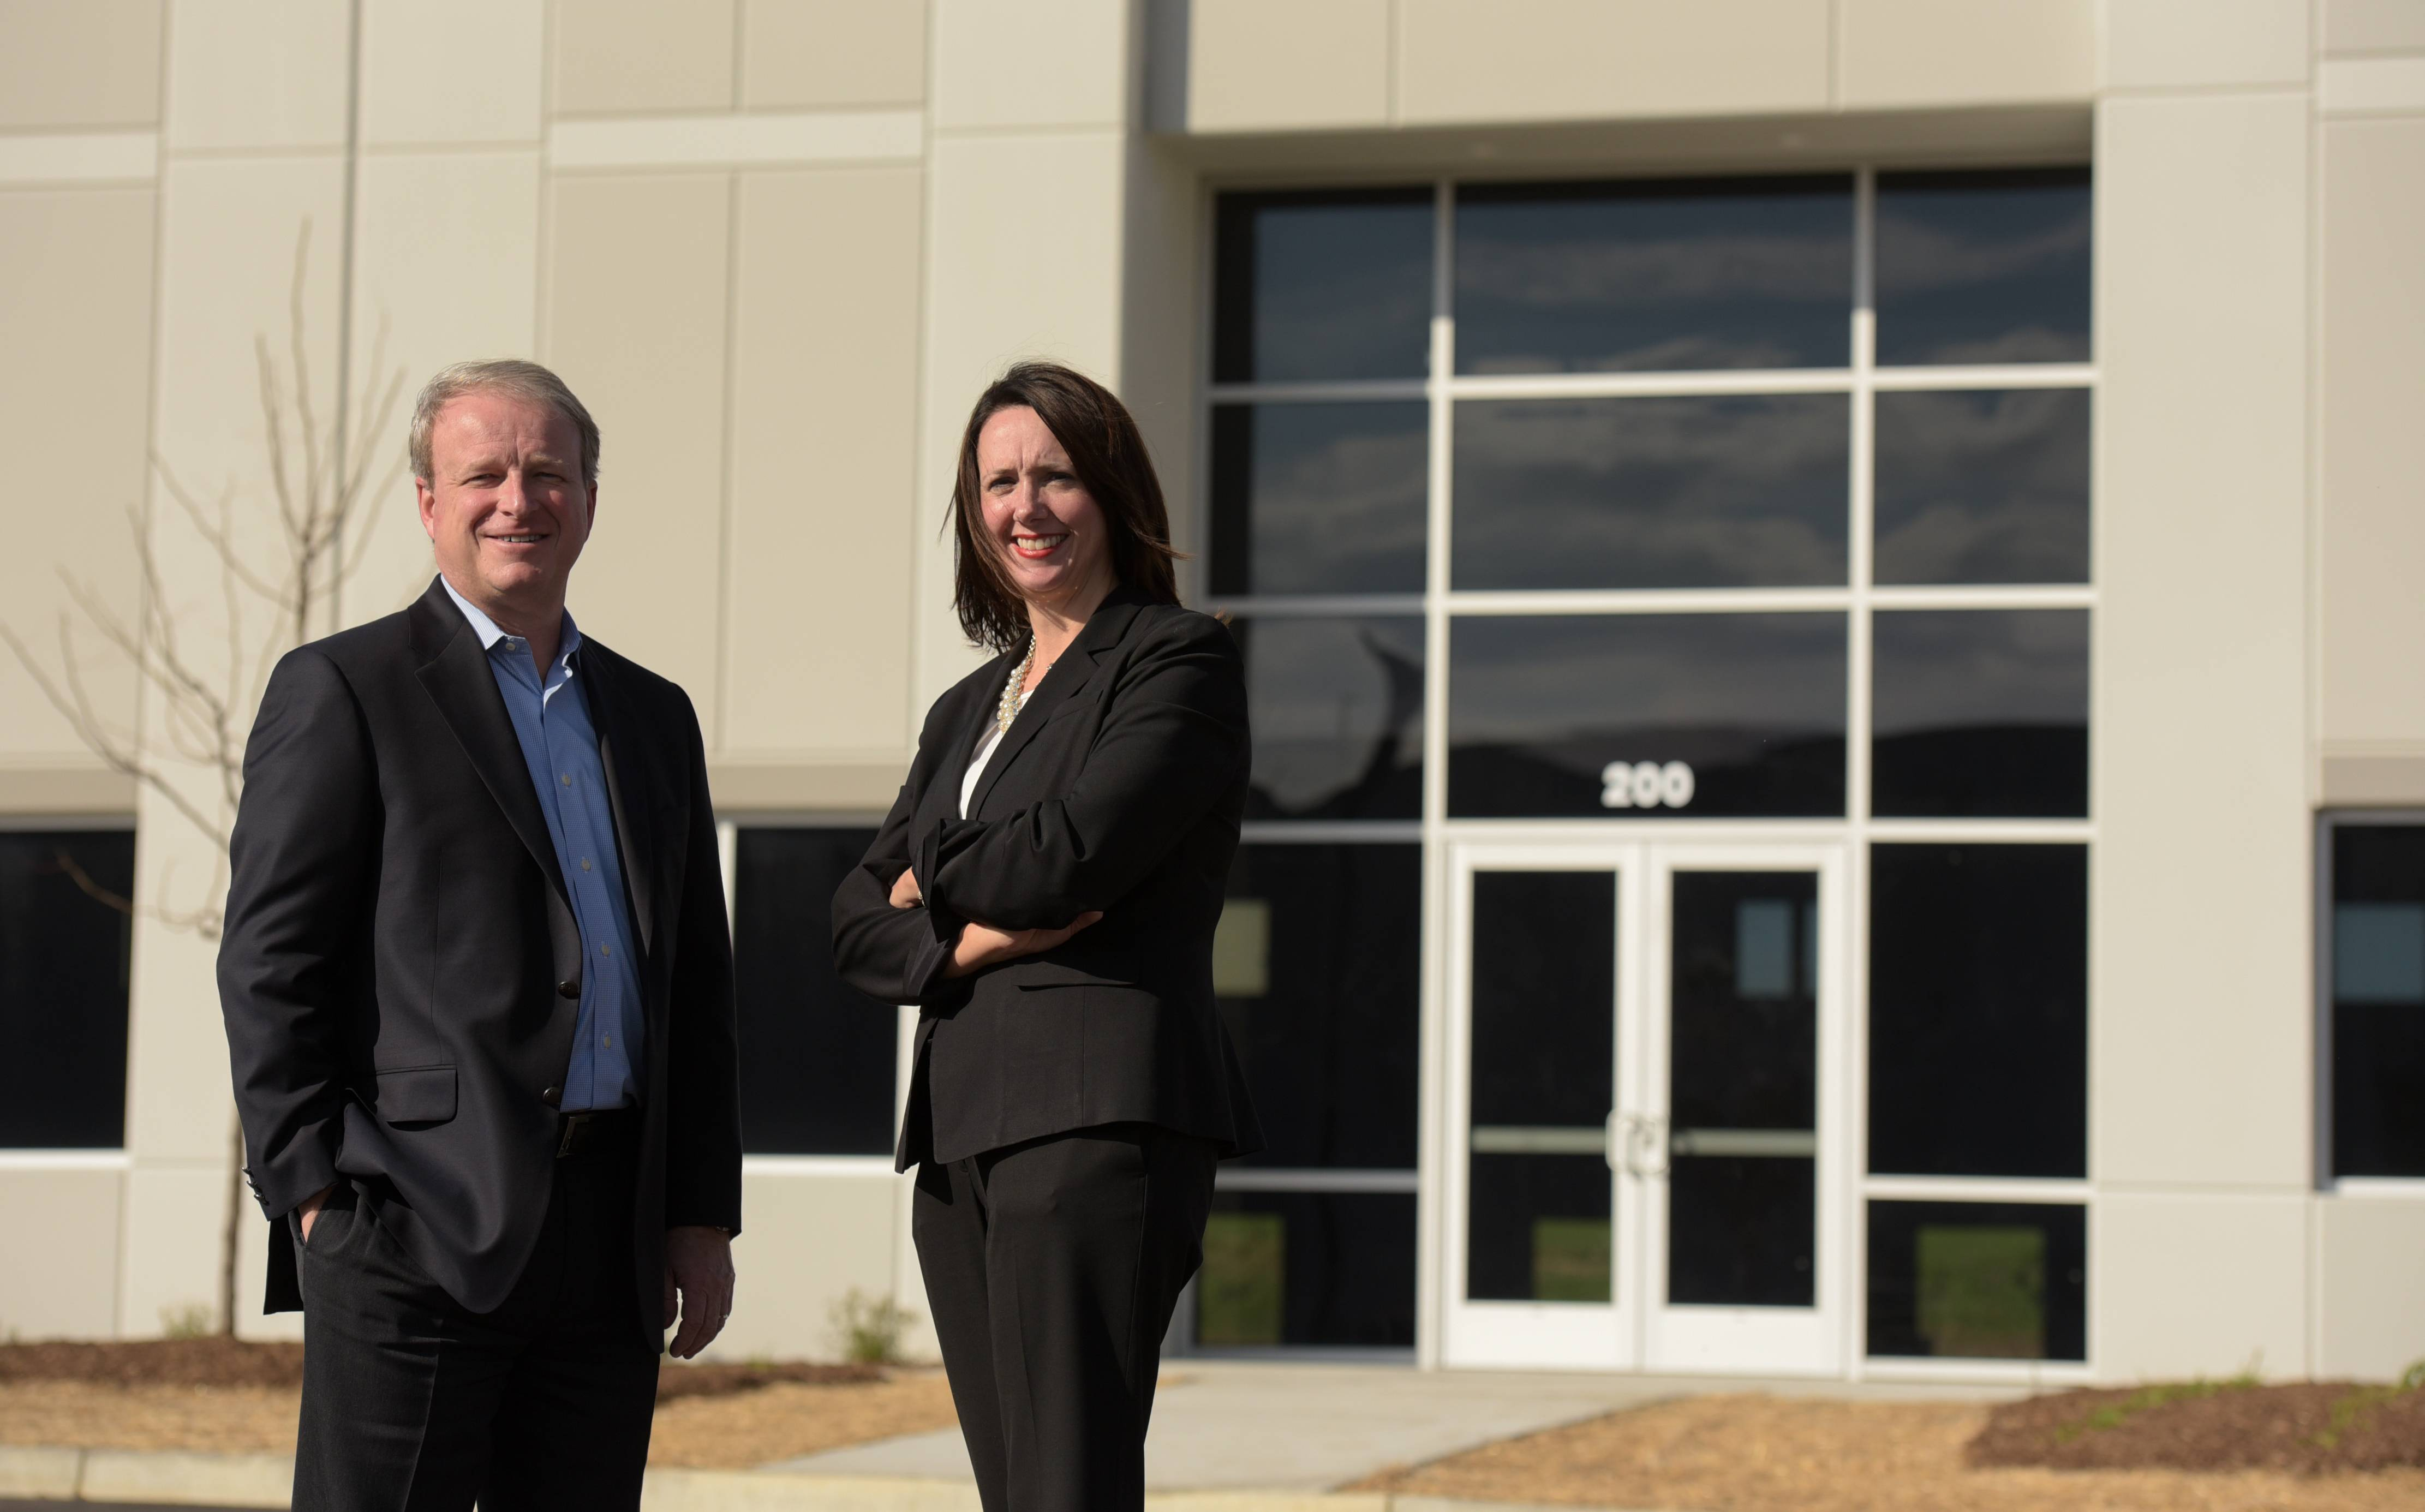 Don Schoenheider of Hillwood and Traci Buckingham Payette, senior vice president of CBRE, stand in front of the Romeoville Commerce Center buildings.